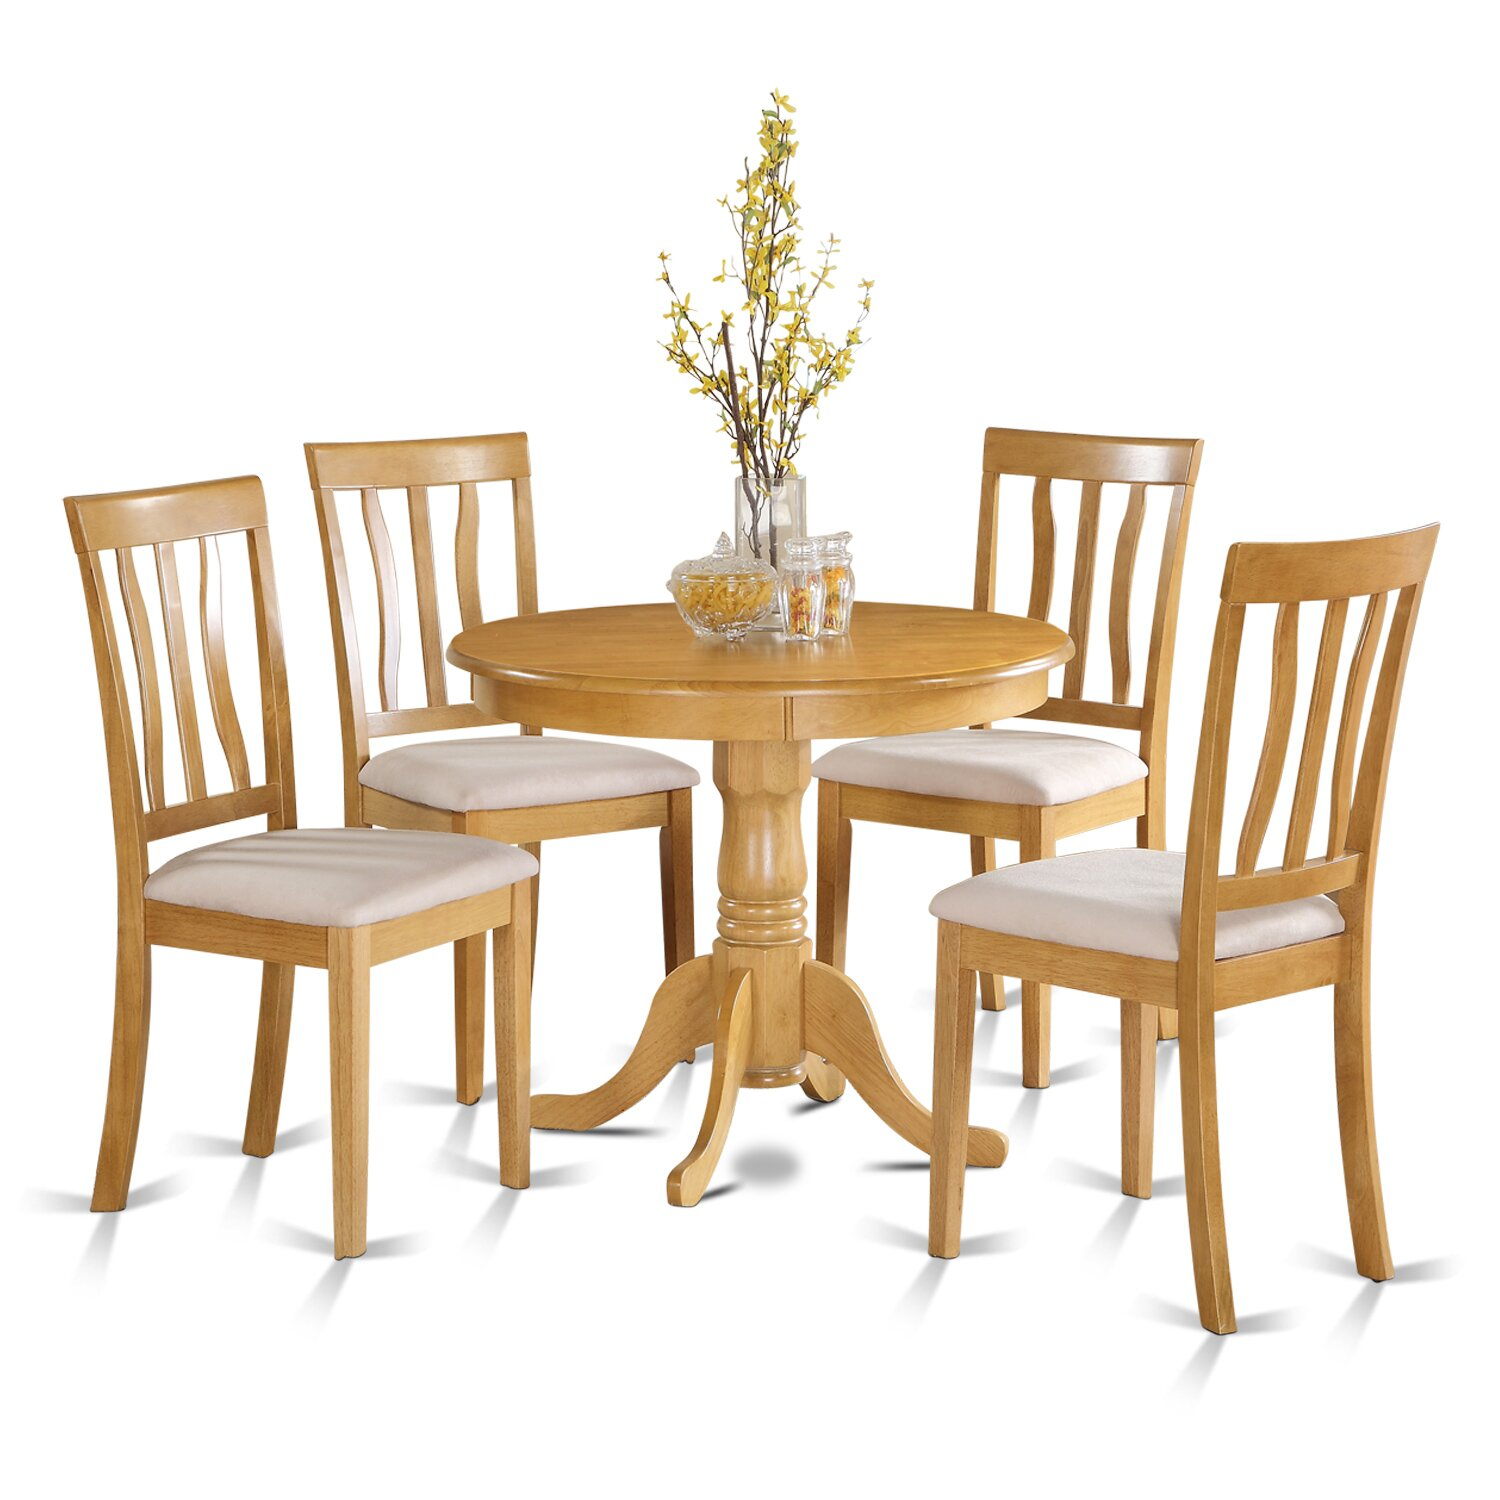 Wooden importers 5 piece dining set reviews wayfair for Small wooden dining table set